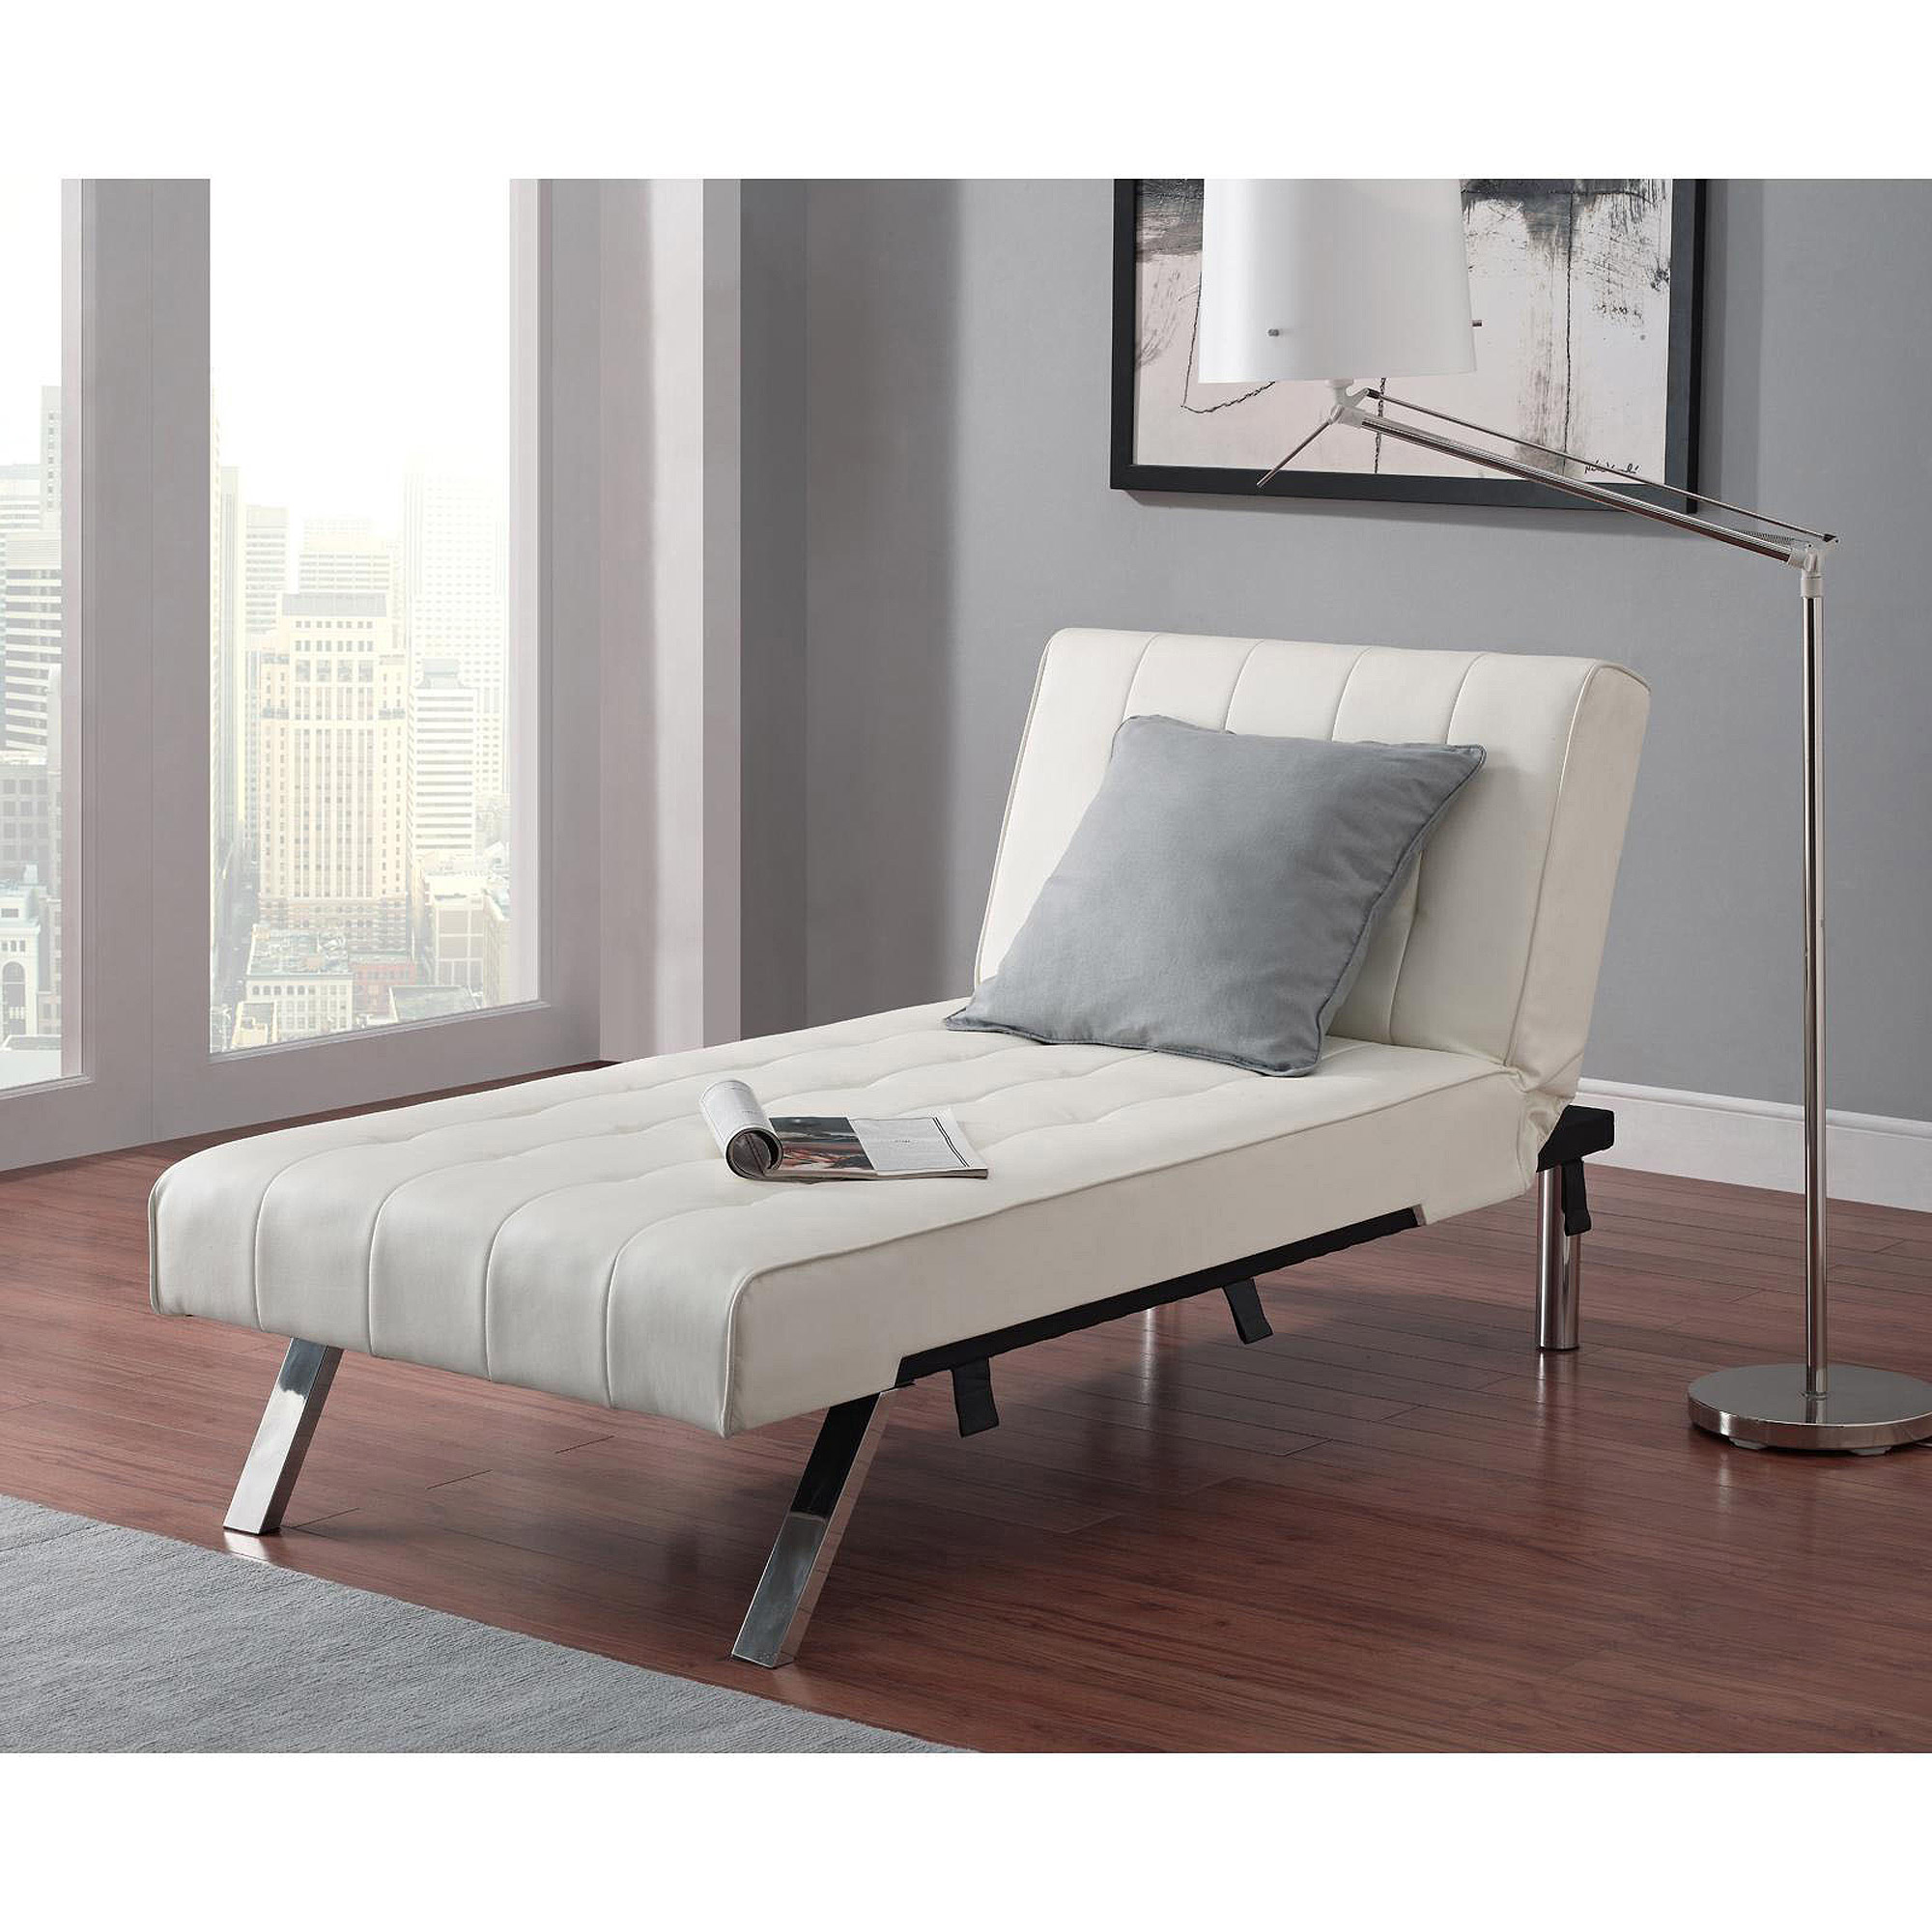 Julia Futon Chaise Lounger, Black   Walmart.com